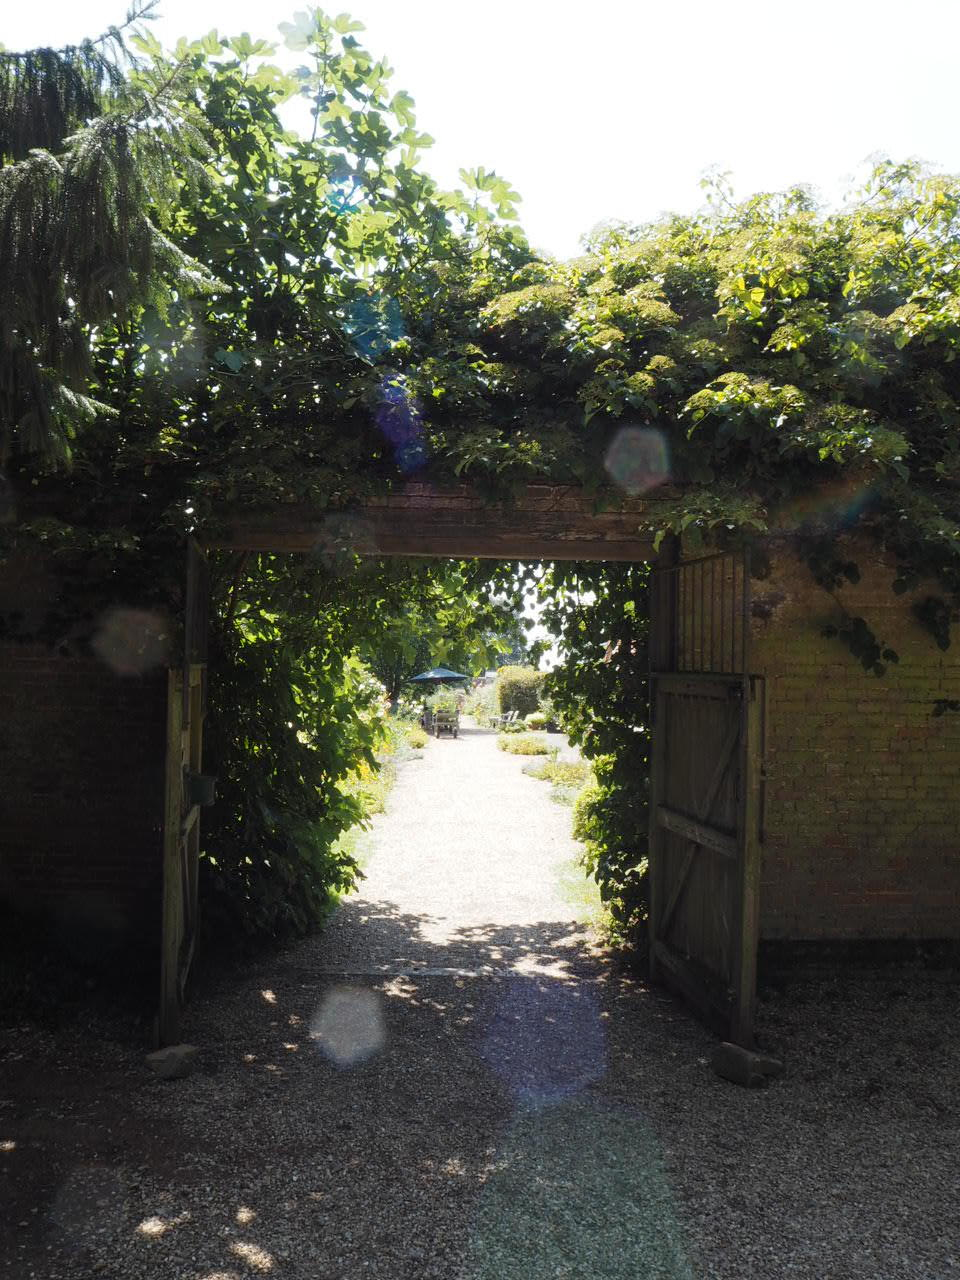 The entrance to West Acre gardens